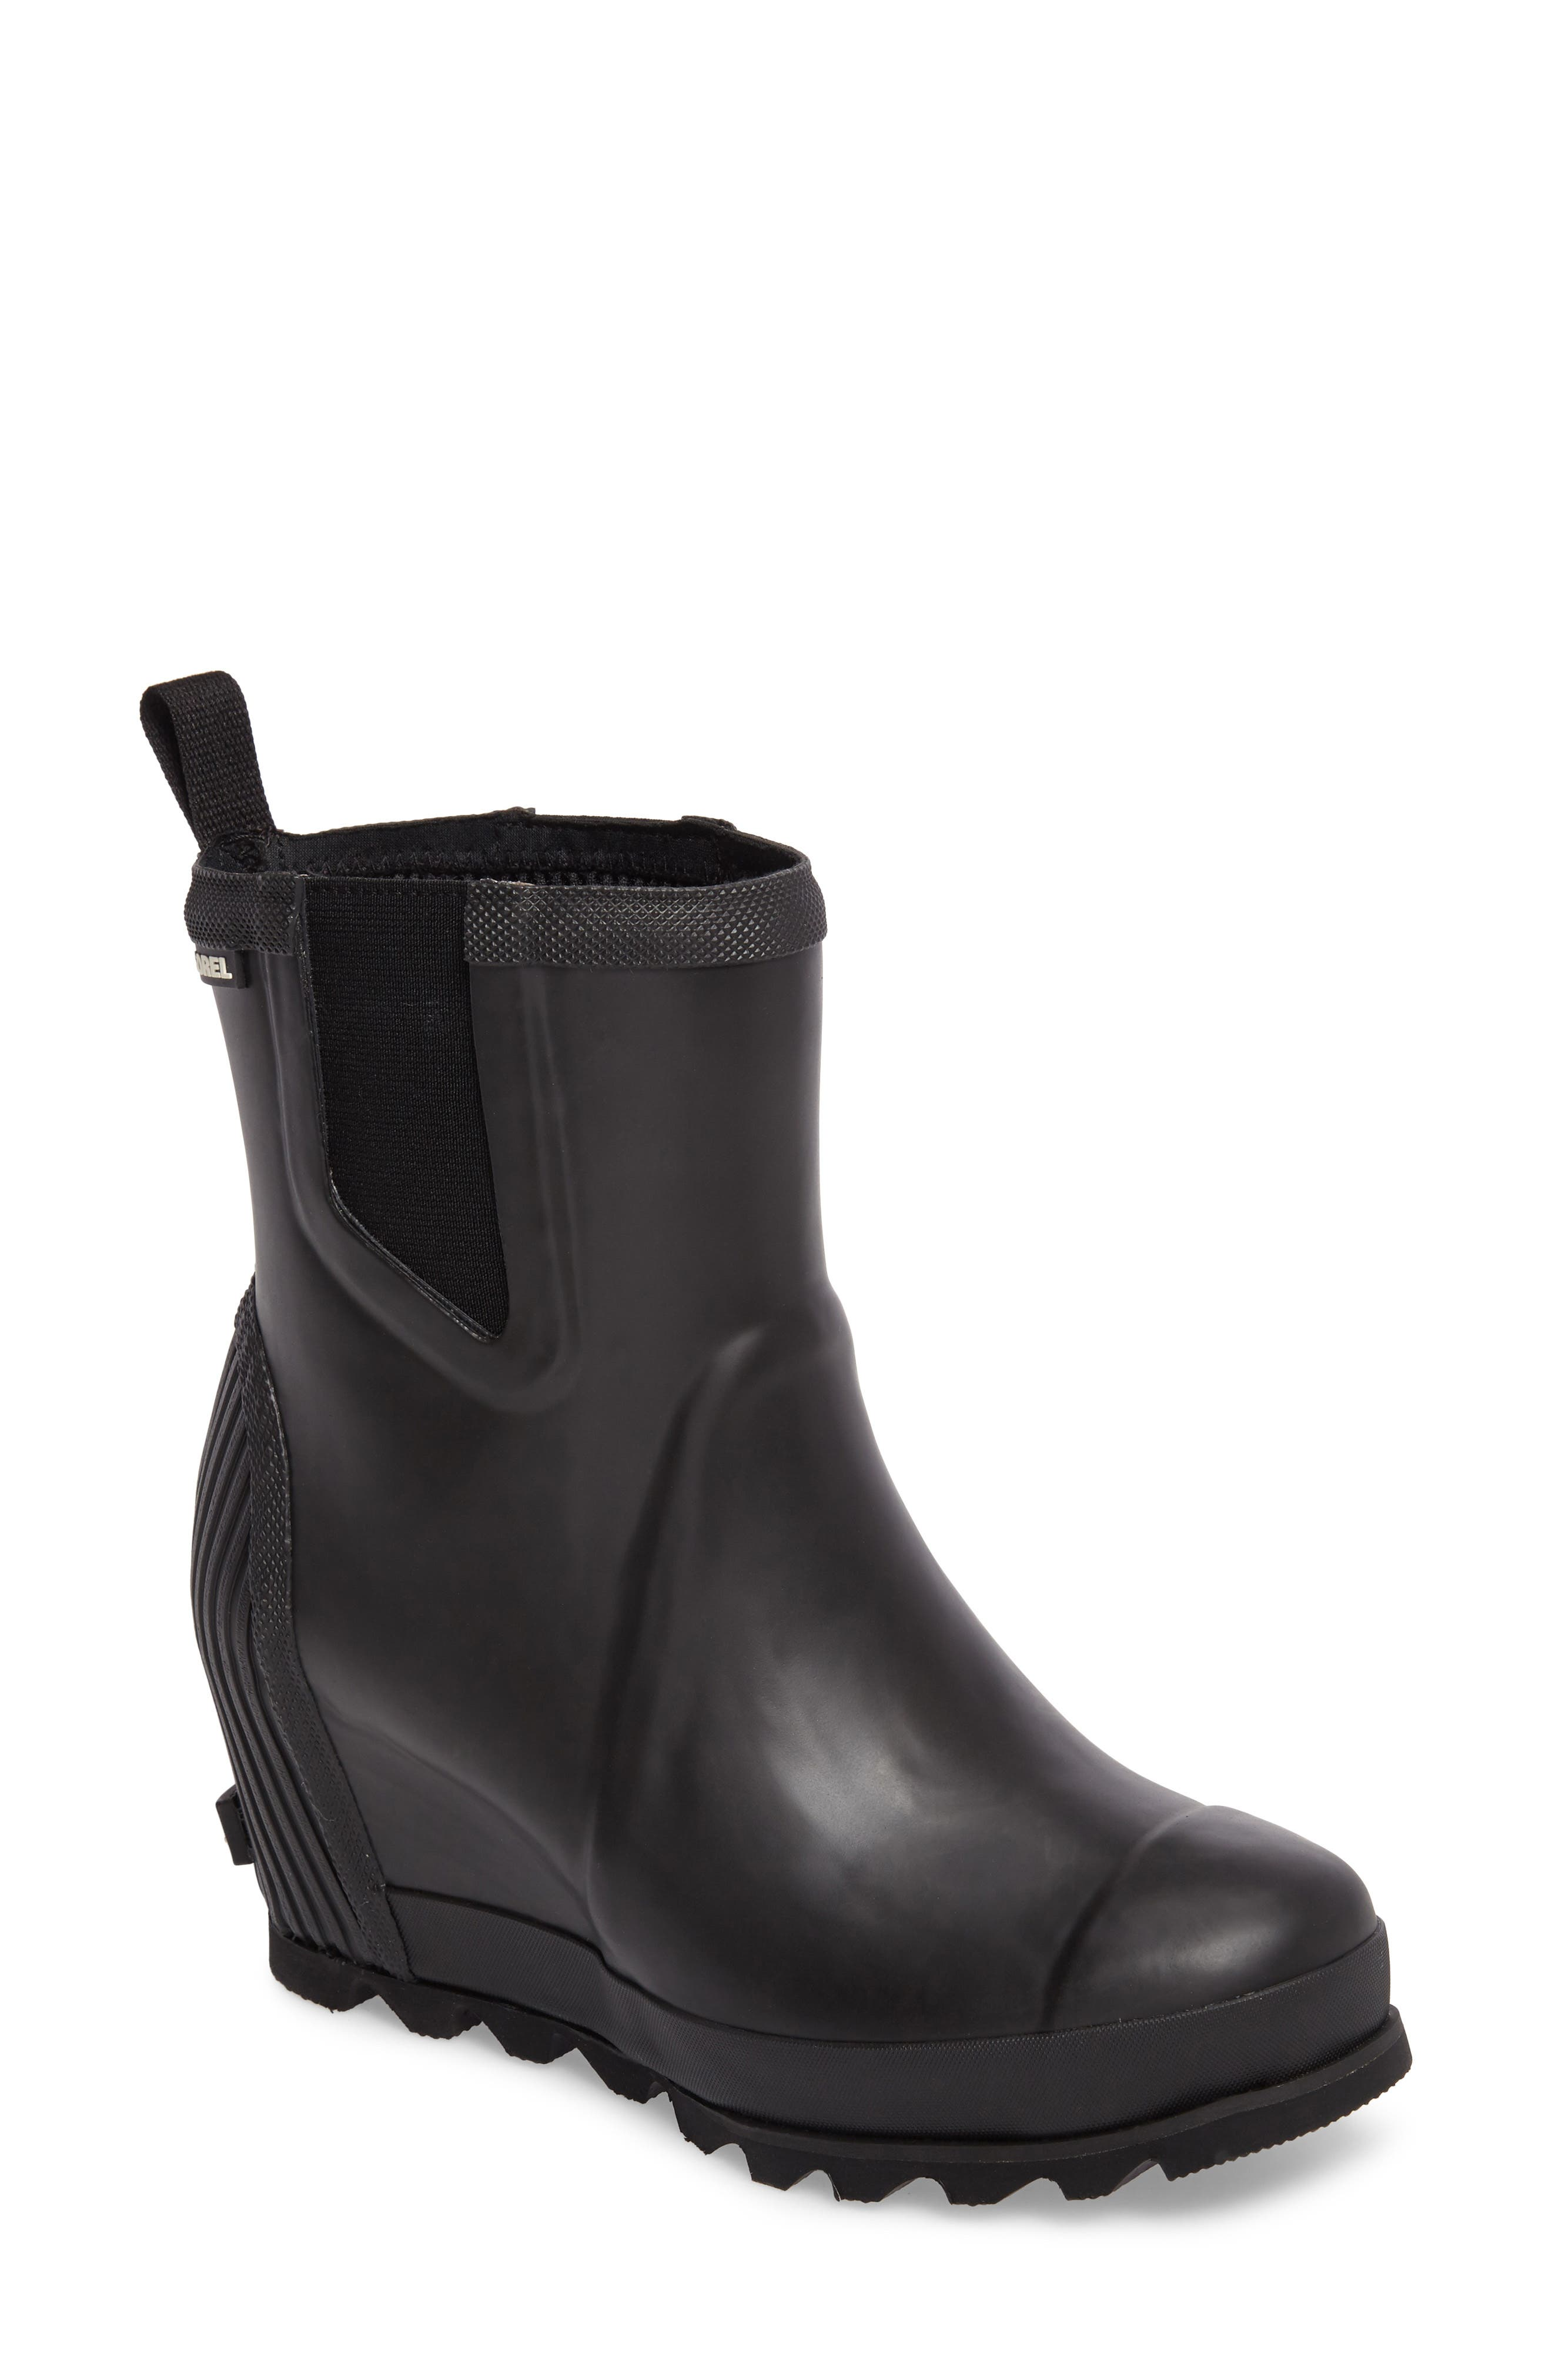 Sorel Joan Of Arctic(TM) Wedge Chelsea Rain Boot, Black